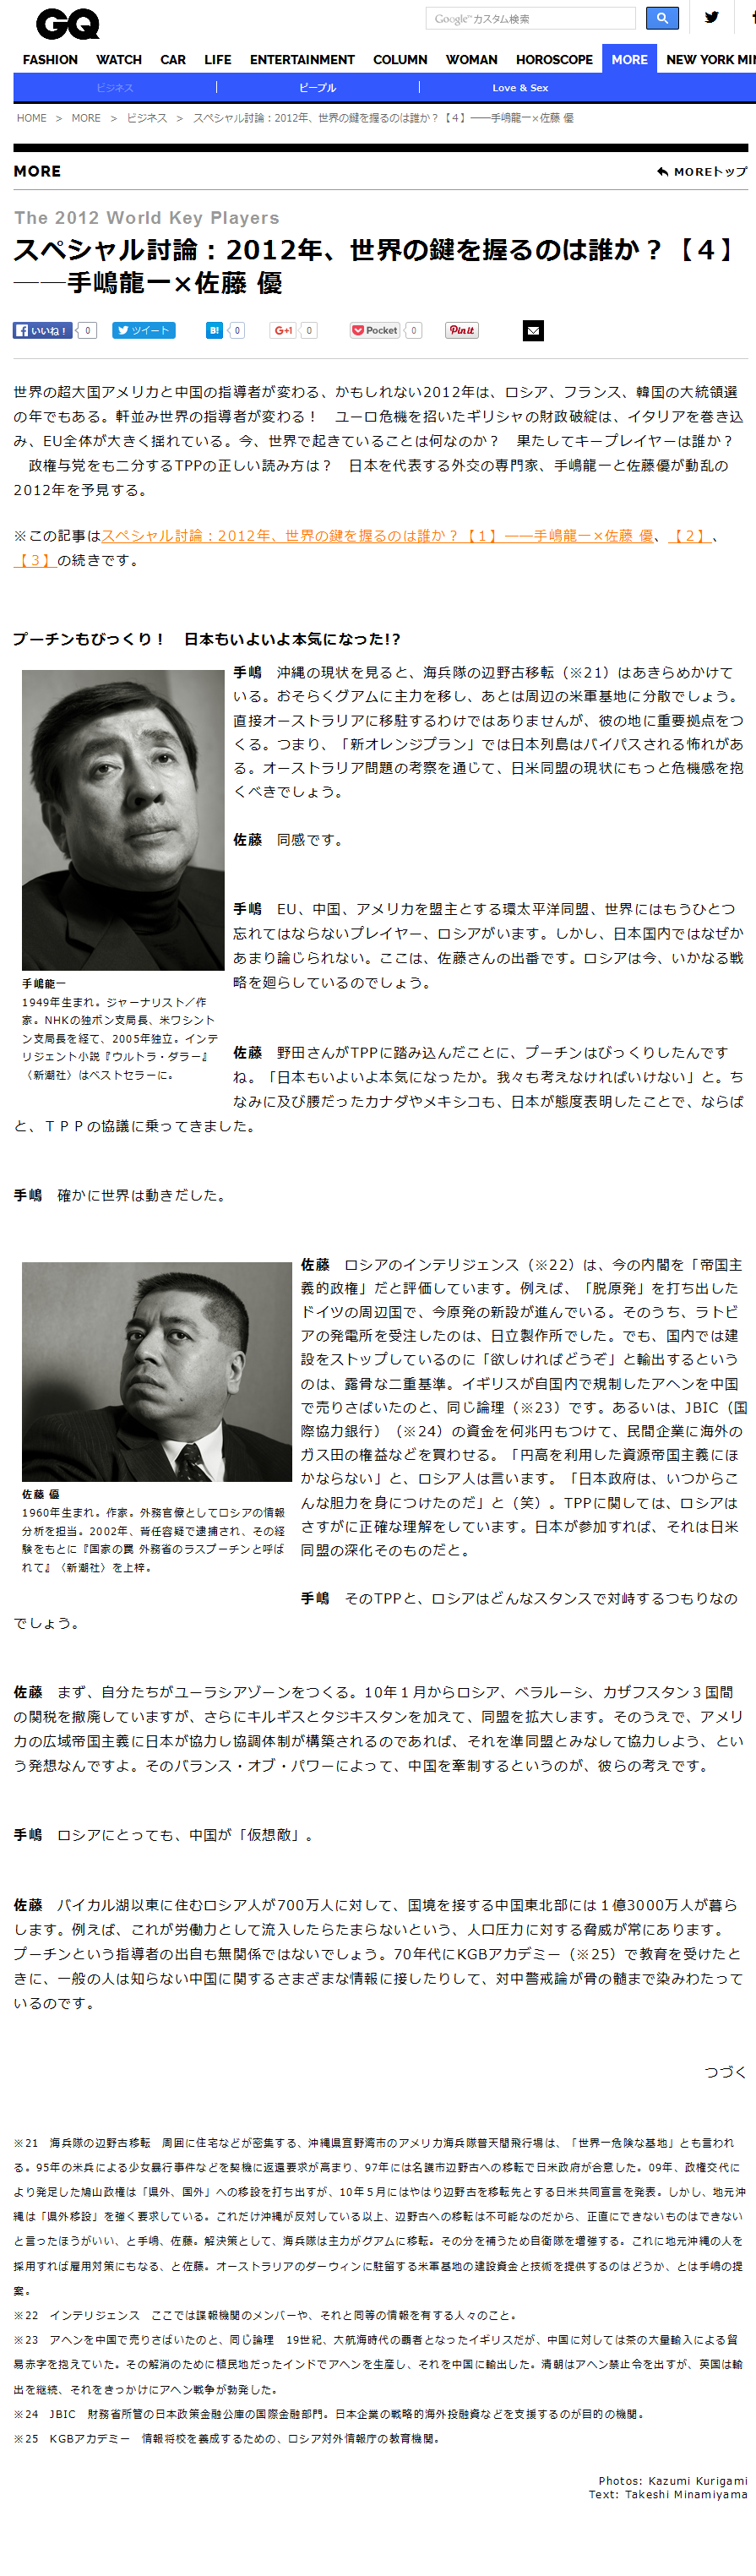 https://gqjapan.jp/life/business/20120125/keyplayers4